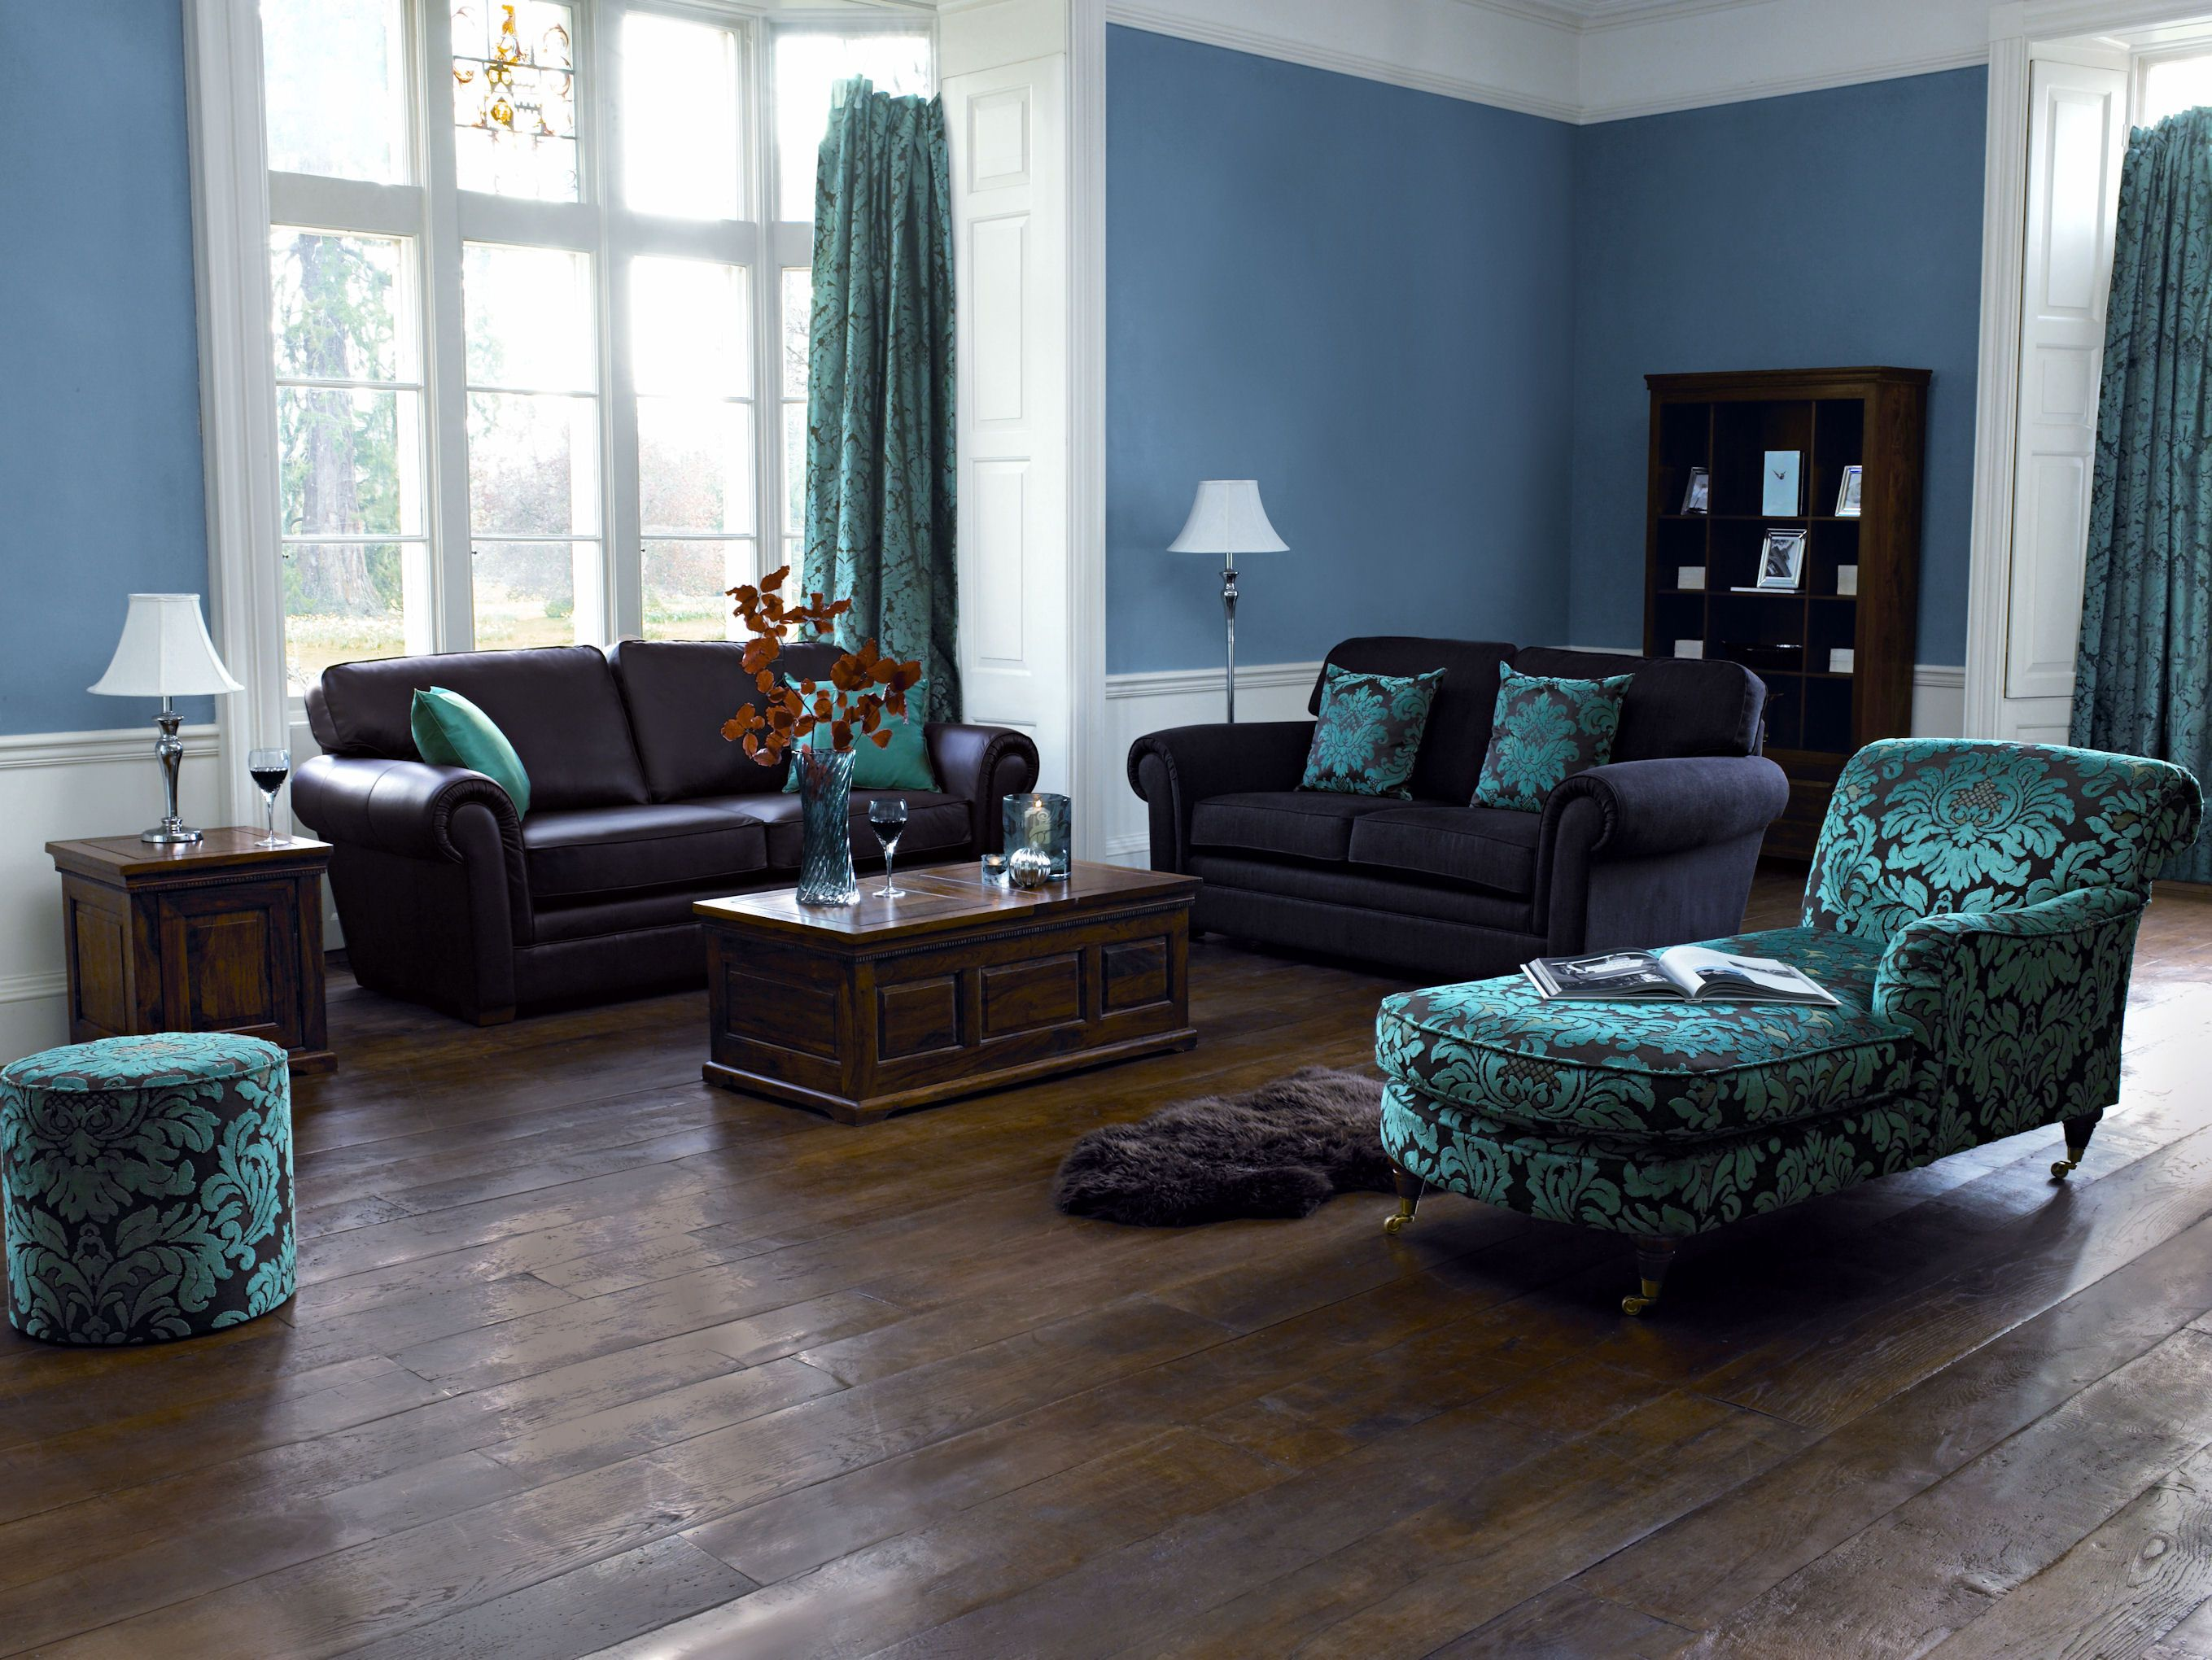 living room design ideas with dark furniture decorating for my blue paint color and hardwood floors 1